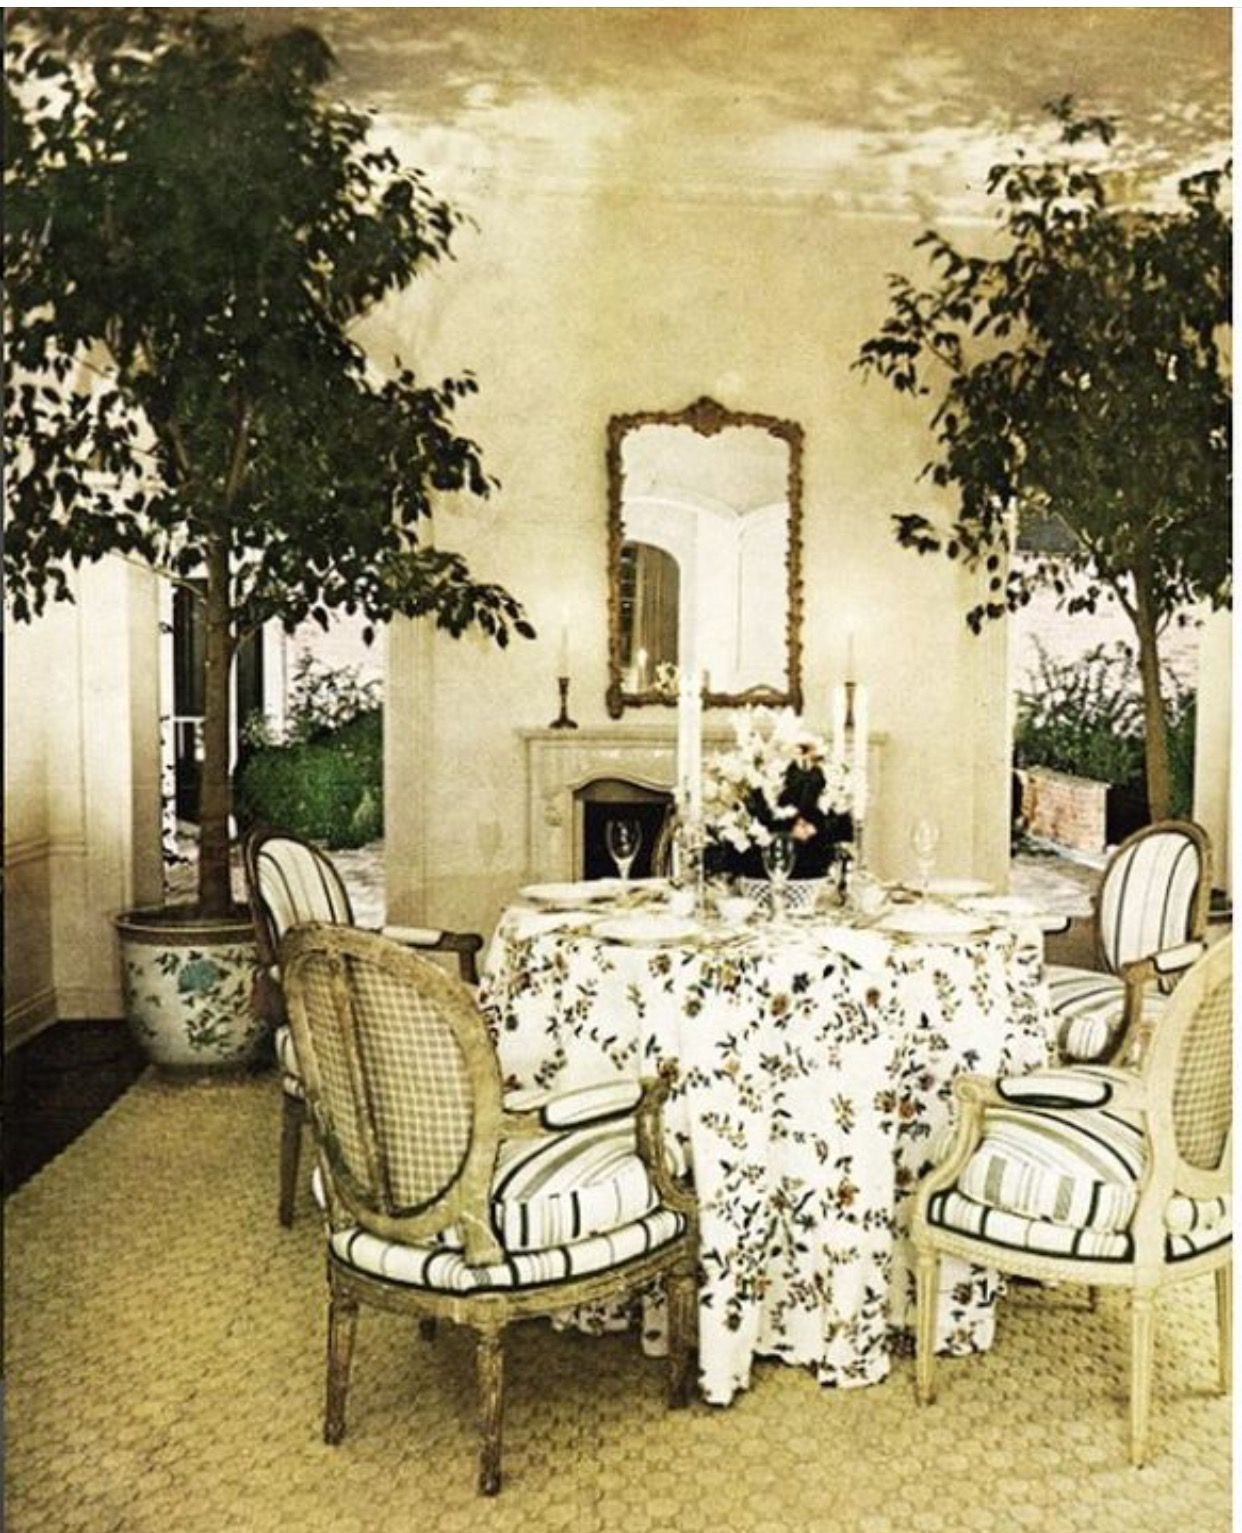 Pin by Jill Wiley White on DINING   Pinterest   Room, Mantels decor ...